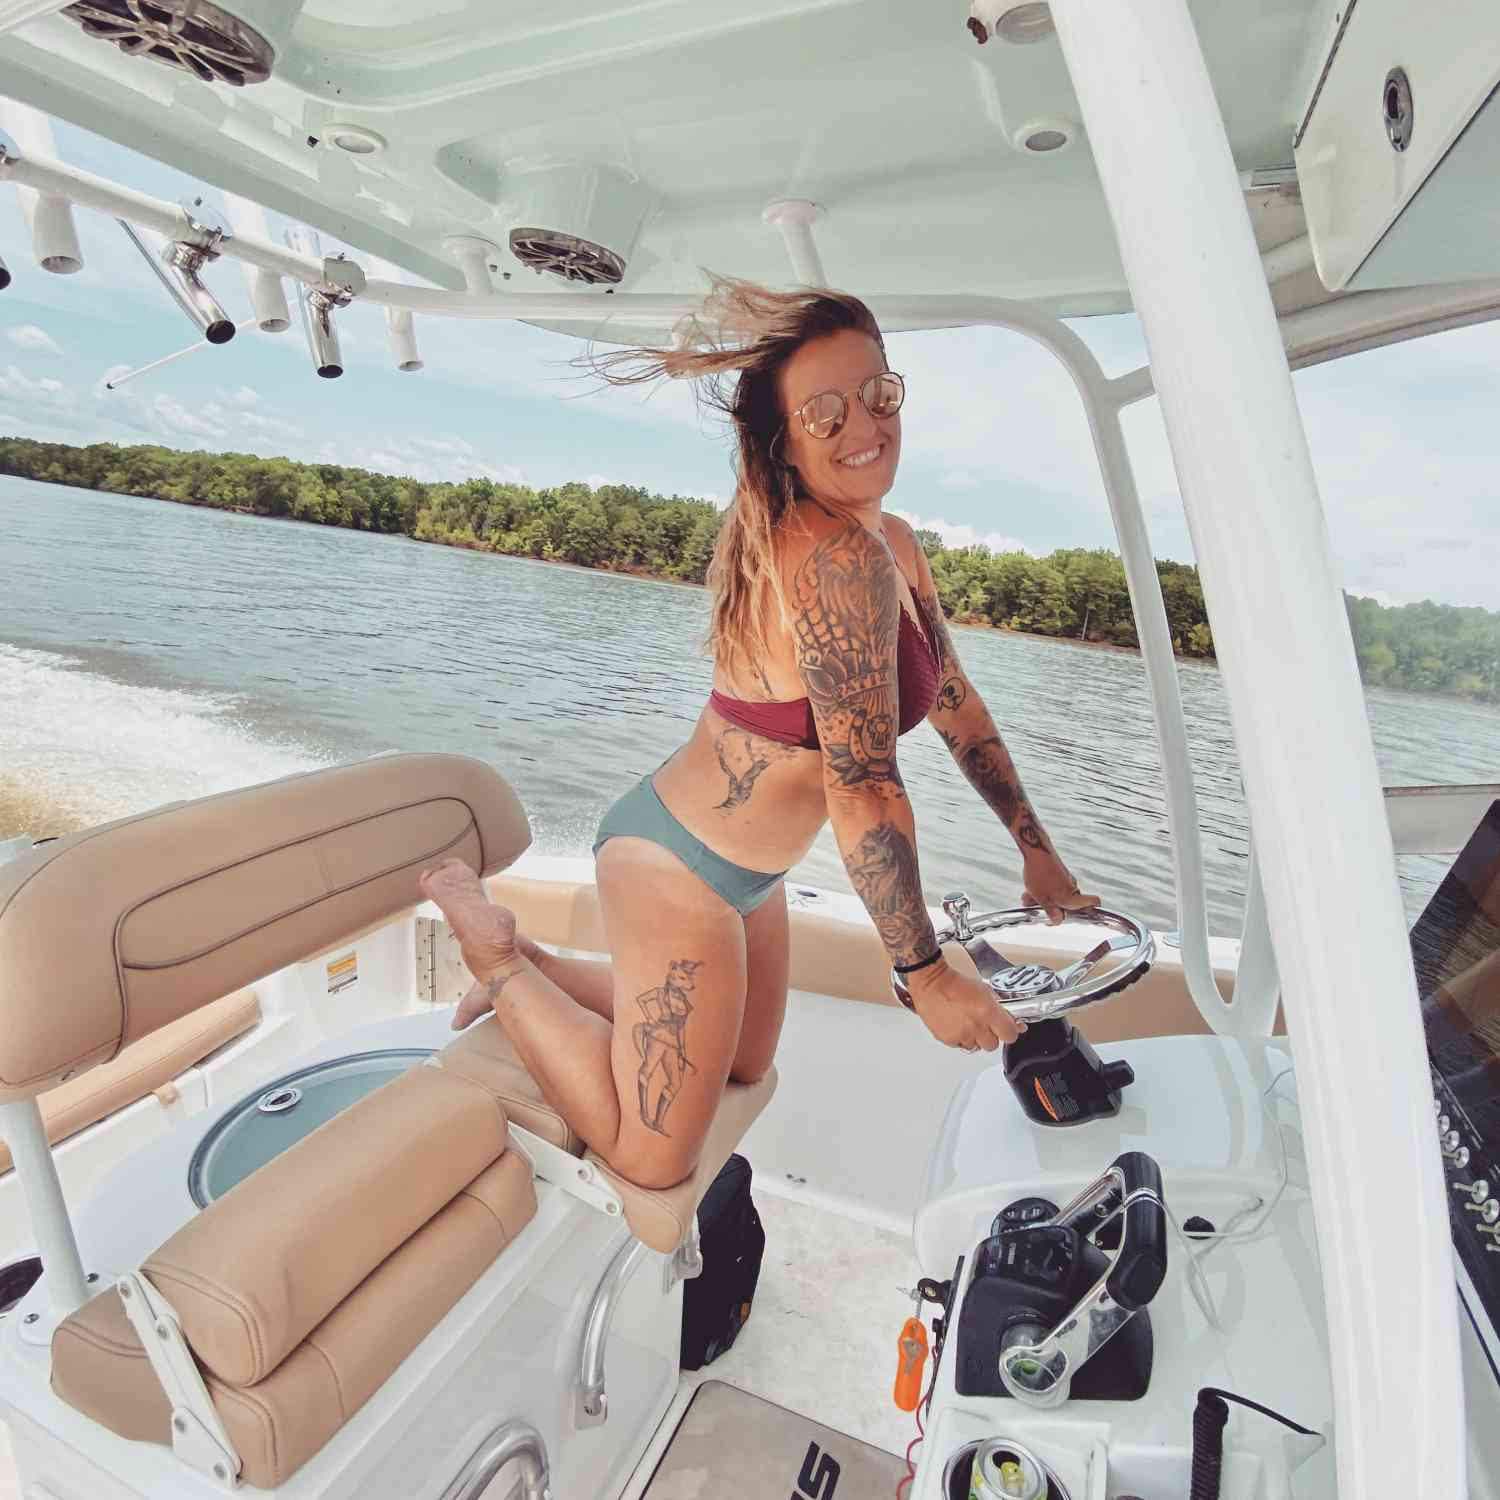 Title: Shortie in the Sportsman - On board their Sportsman Open 252 Center Console - Location: Lake Wateree, SC. Participating in the Photo Contest #SportsmanJune2020